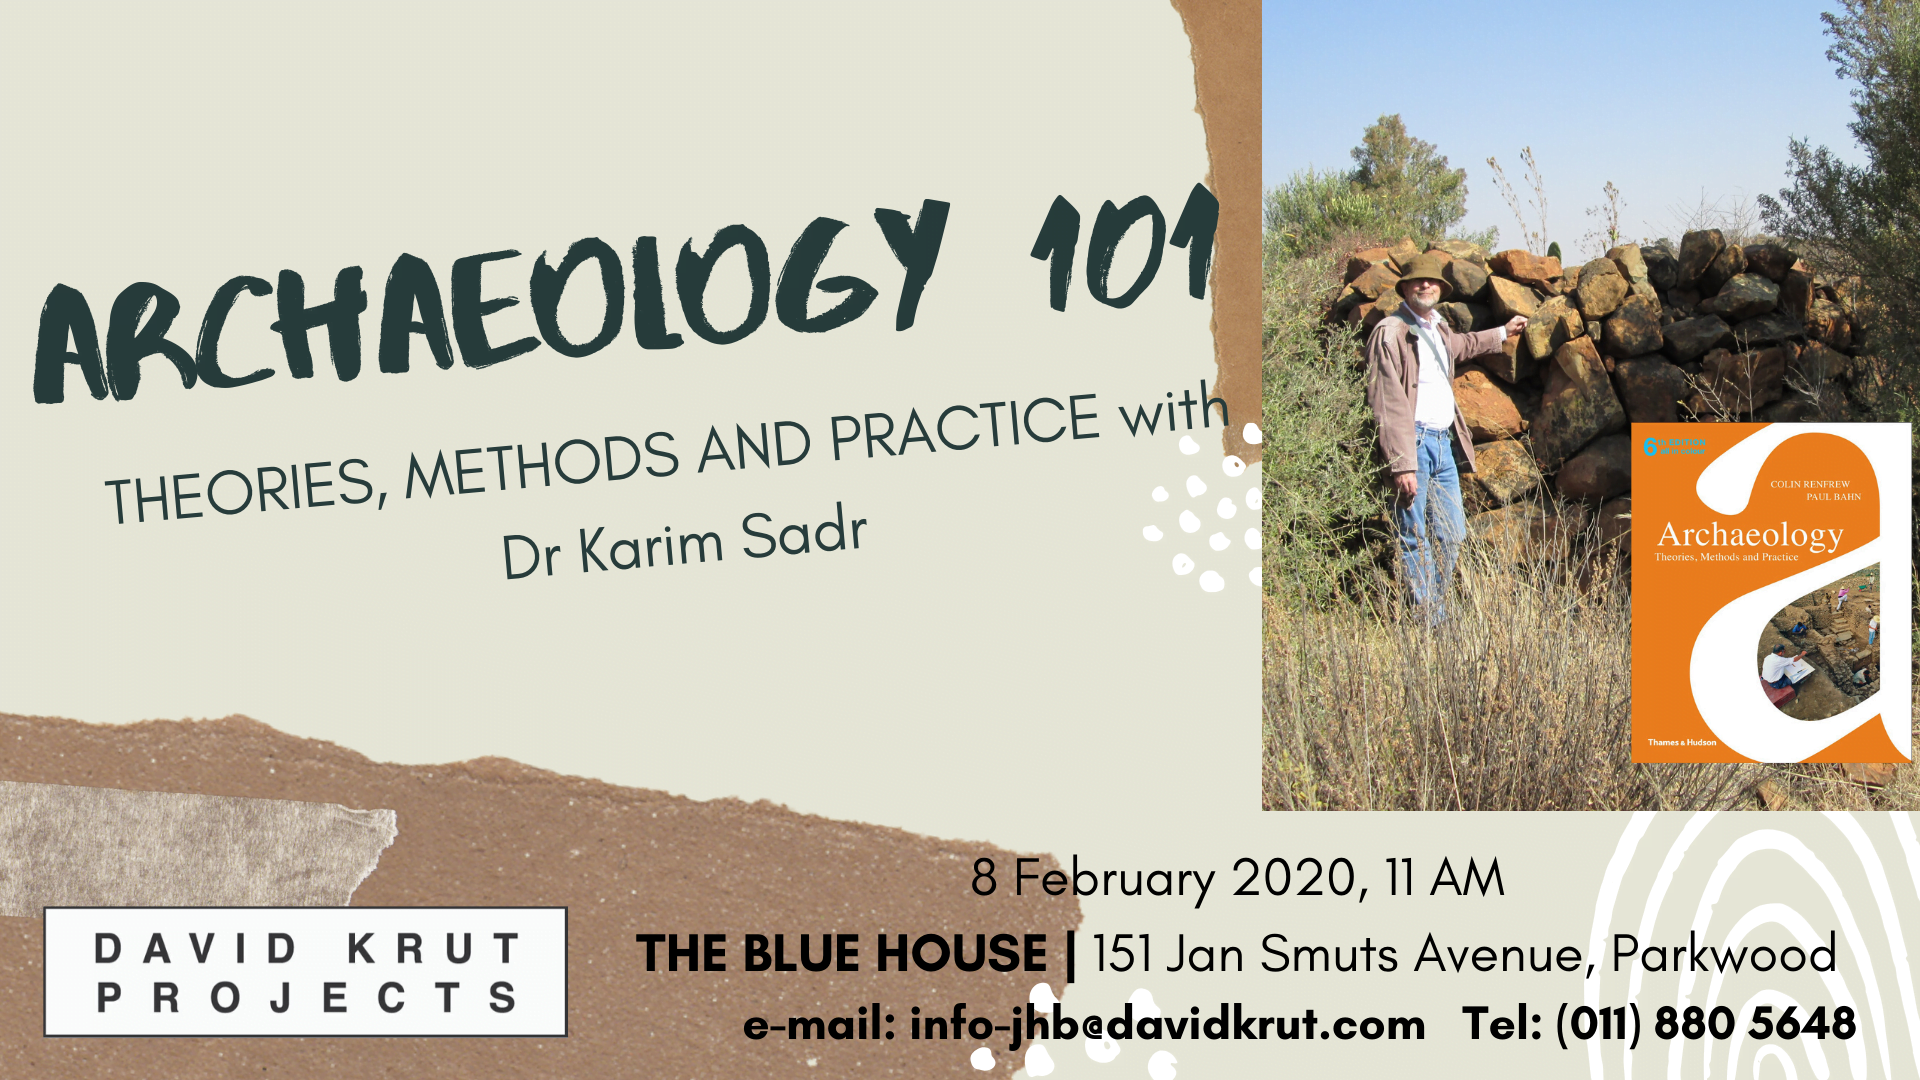 Saturday Talk at 151 | ARCHAEOLOGY 101 with Dr Karim Sadr – THEORIES, METHODS AND PRACTICE